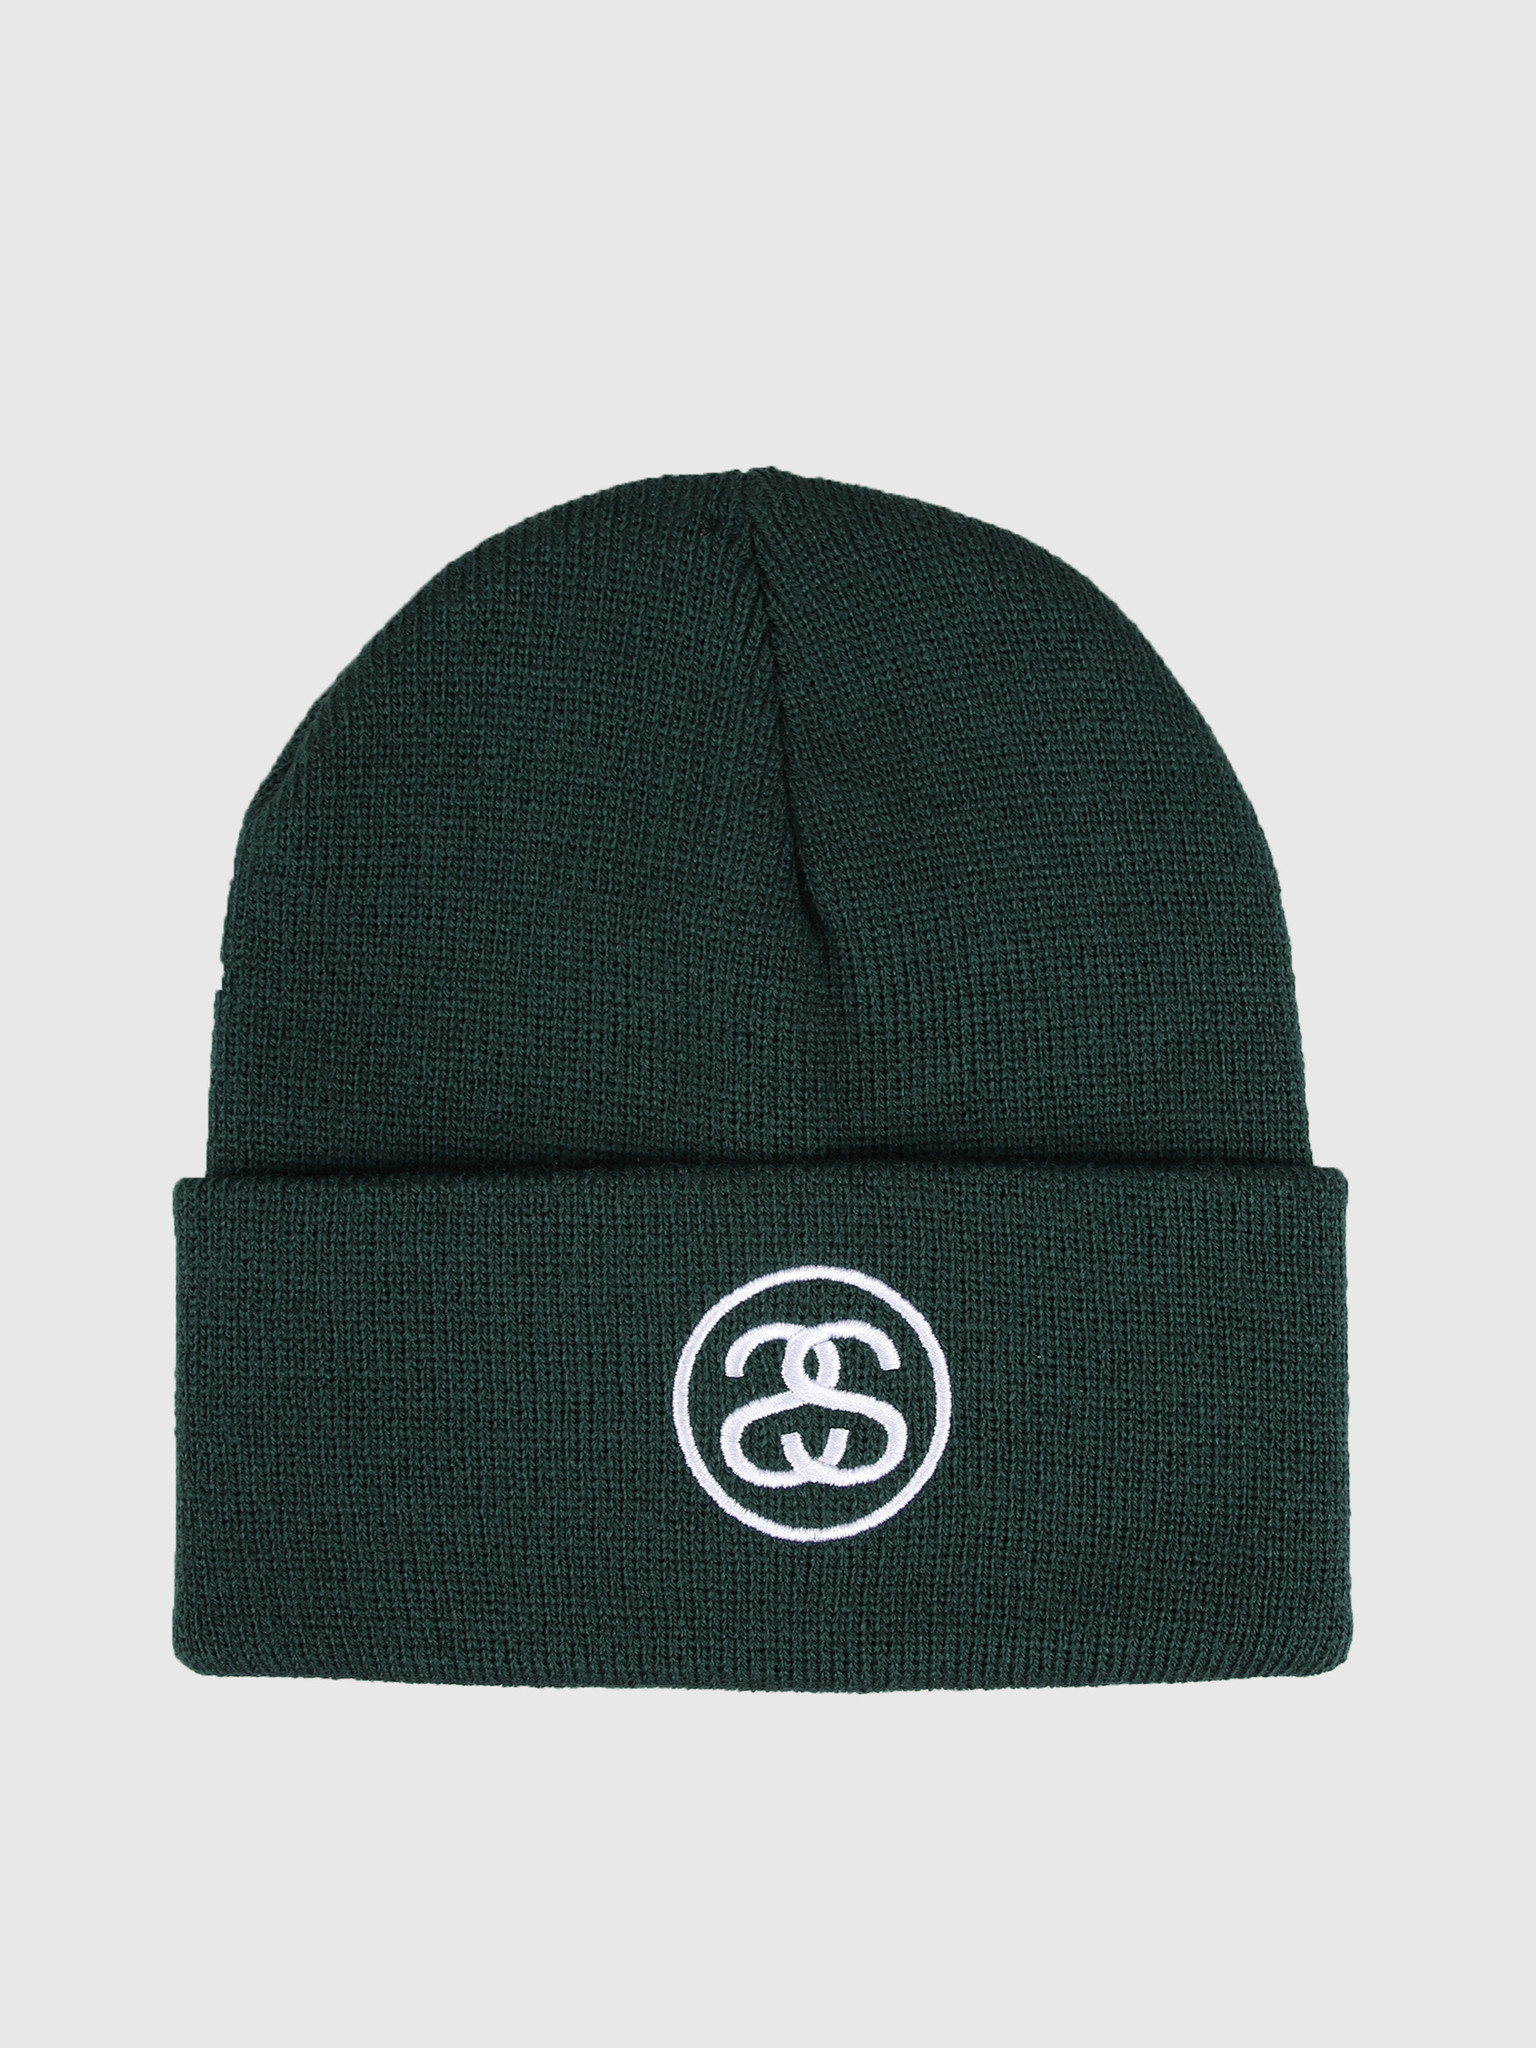 Stussy Stussy Ho19 Ss-Link Cuff Beanie College Green 132954